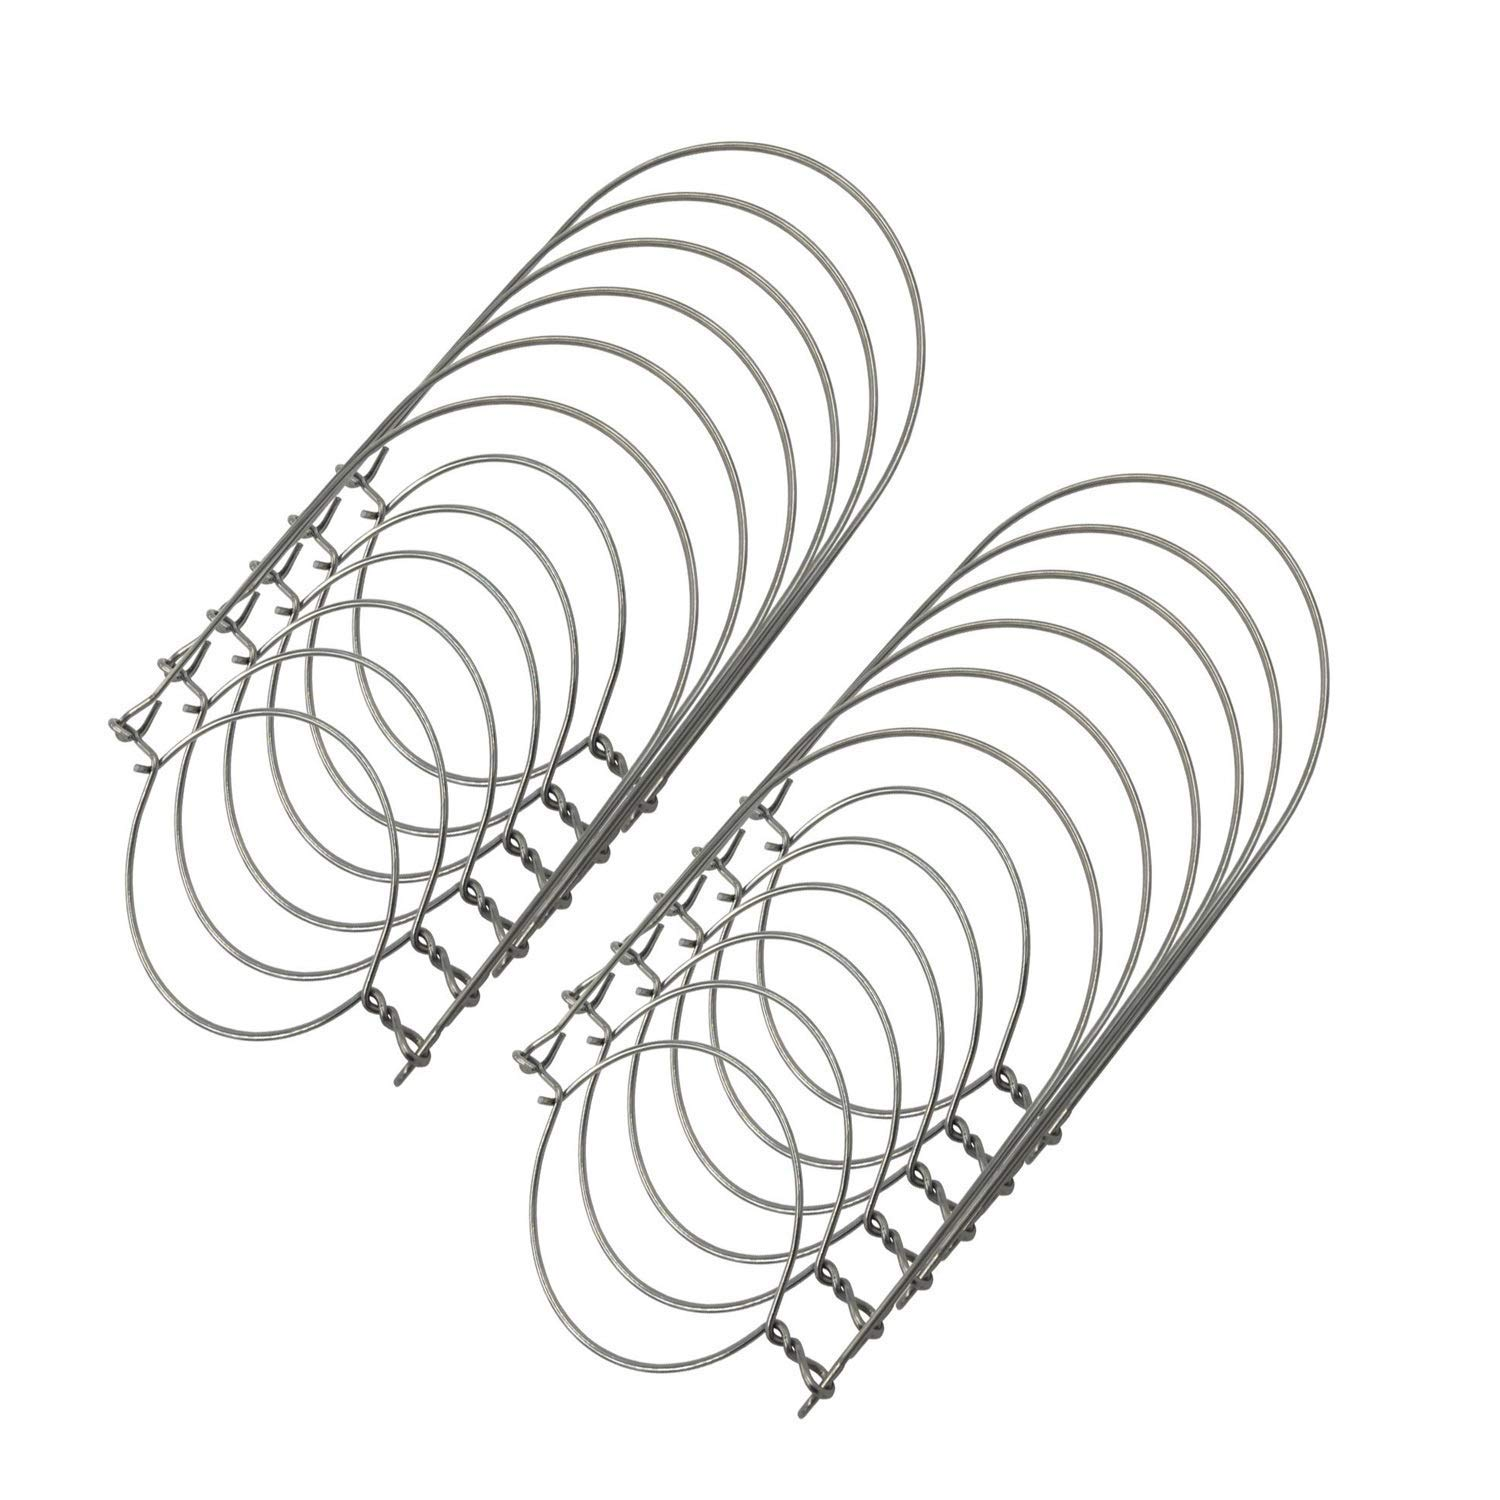 THINKCHANCES 12pcs Silver Rustproof Stainless Steel Wire Handles (Handle-Ease) for Mason Jar, Ball Pint Jar, Canning Jars, Mason Jar Hangers and Hooks, Set of 12 (For Wide Mouth Mason Jars, Silver)